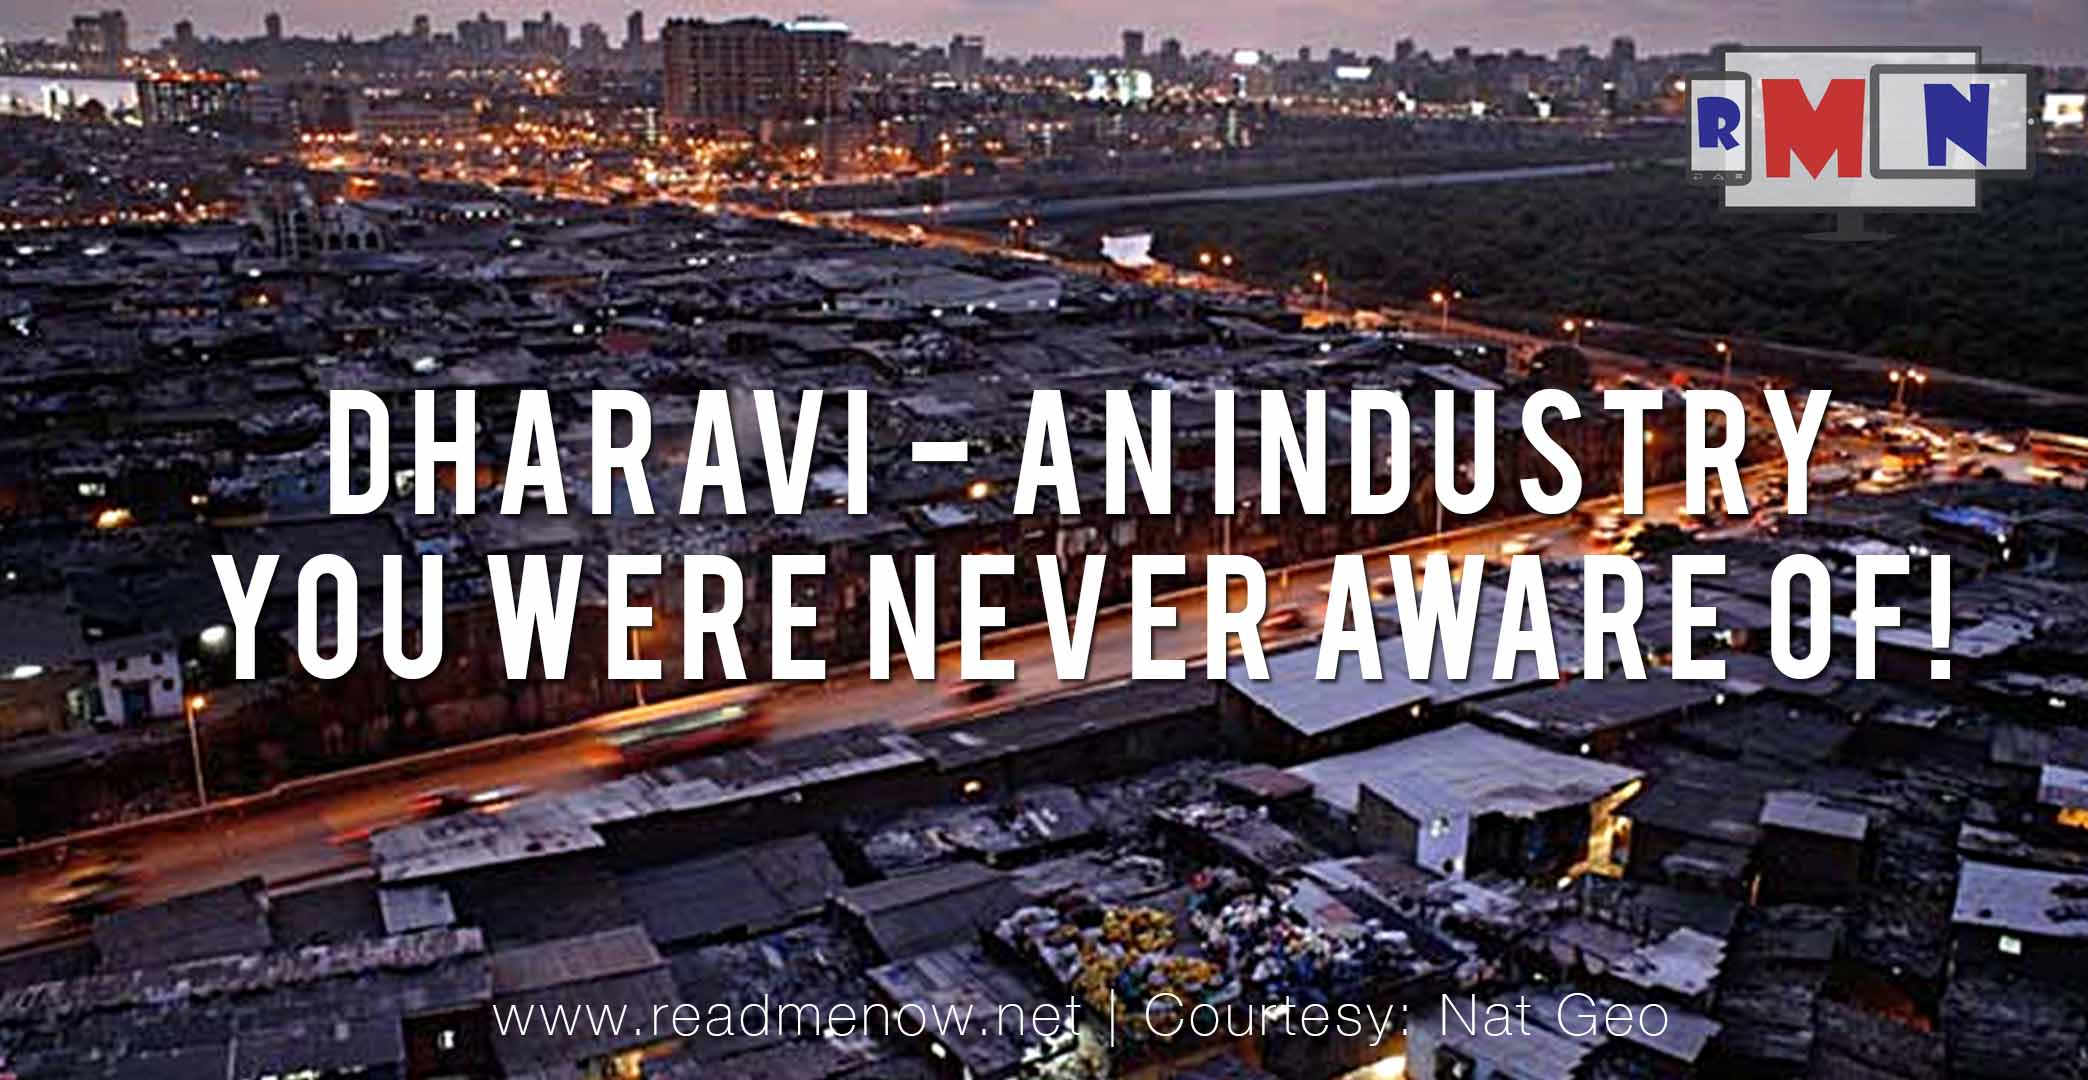 Dharavi – an industry, you were never aware of!